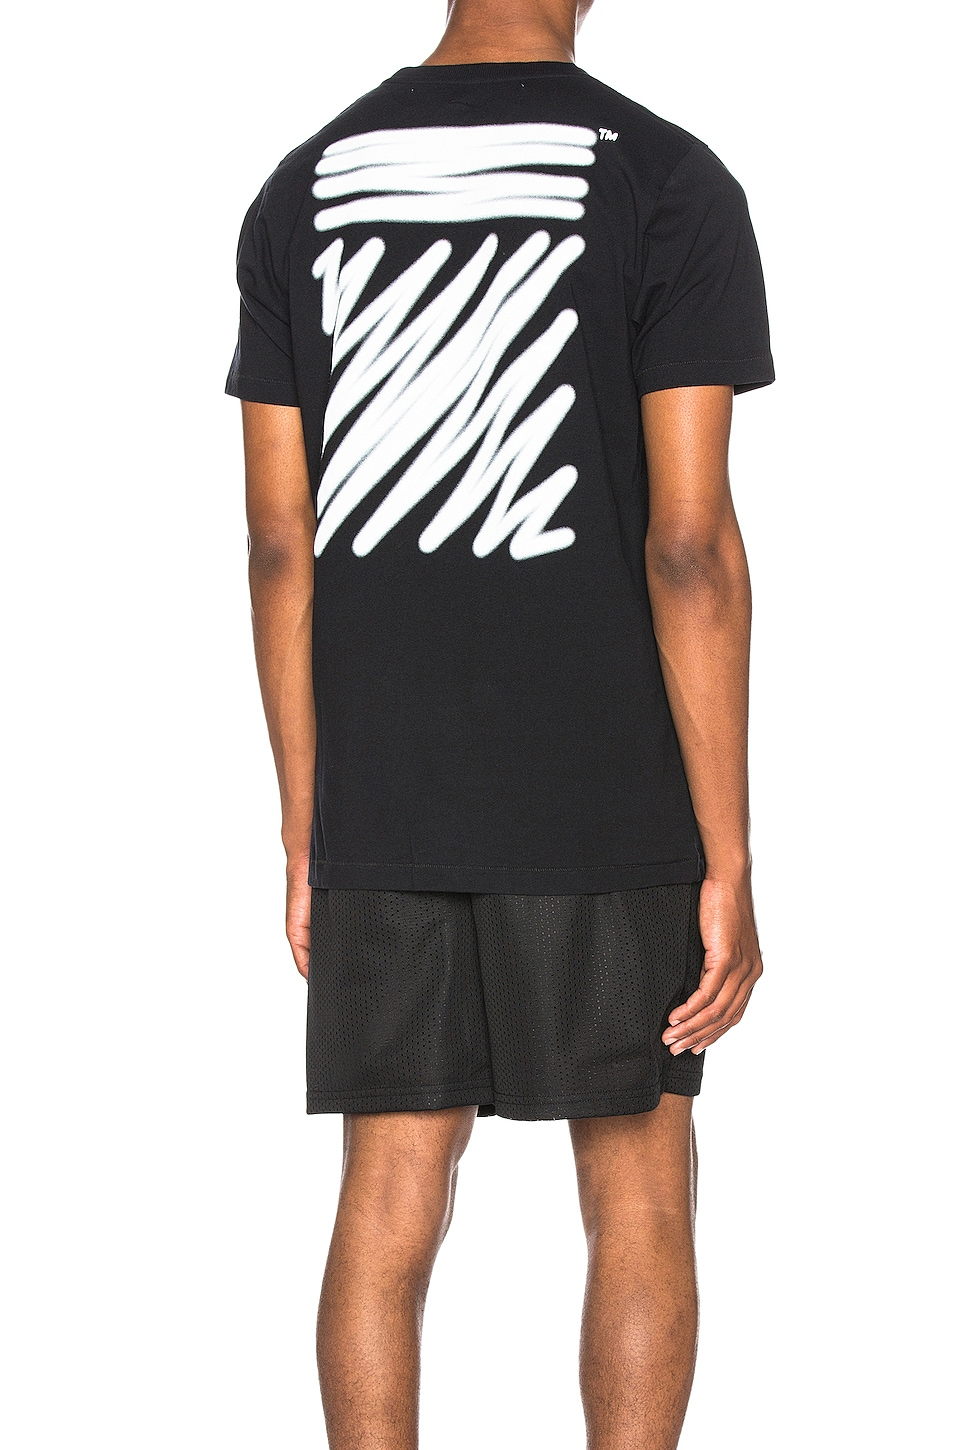 OFF-WHITE T-SHIRT MANCHES COURTES FWRD EXCLUSIVE